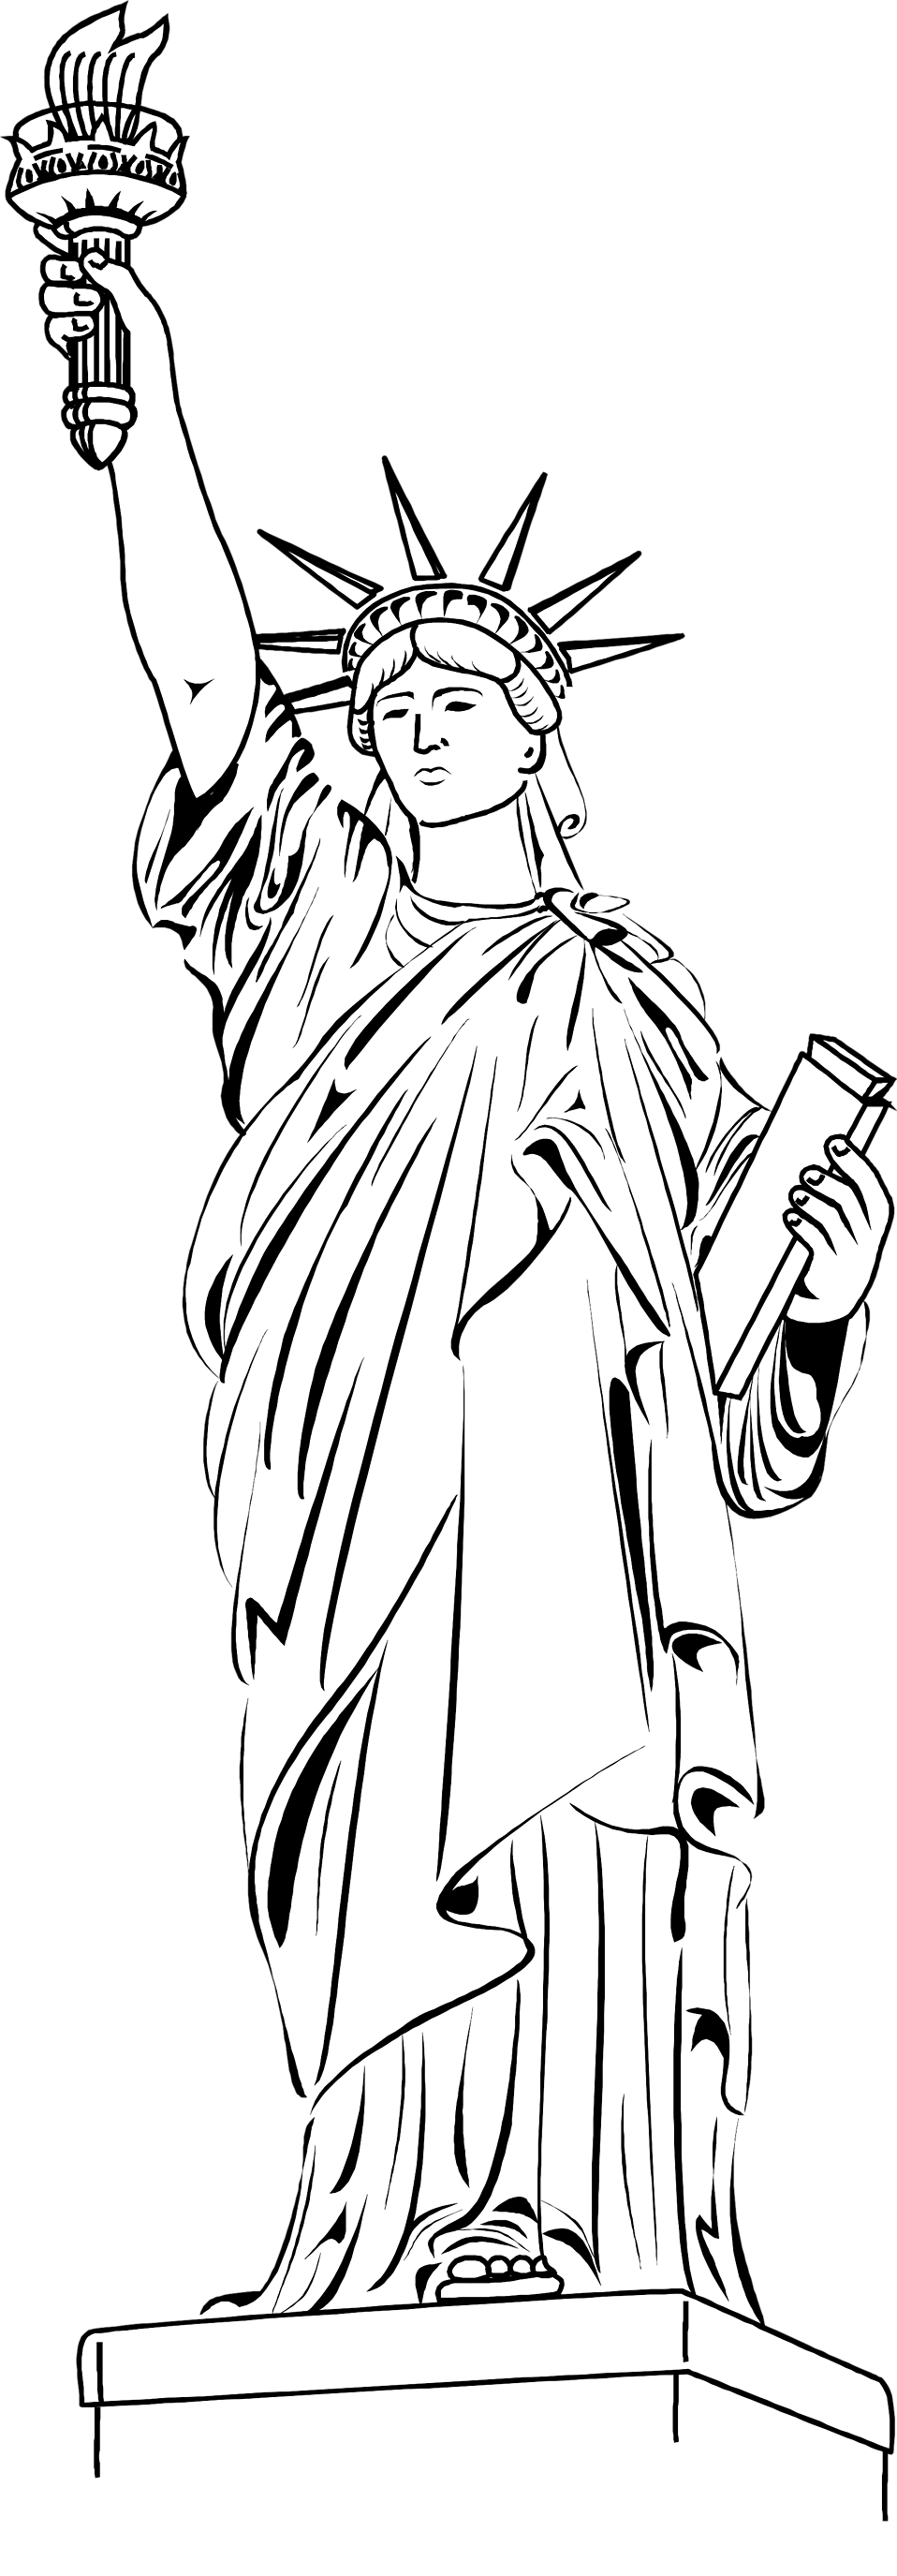 statue of liberty drawing template - lady liberty clipart clipart suggest